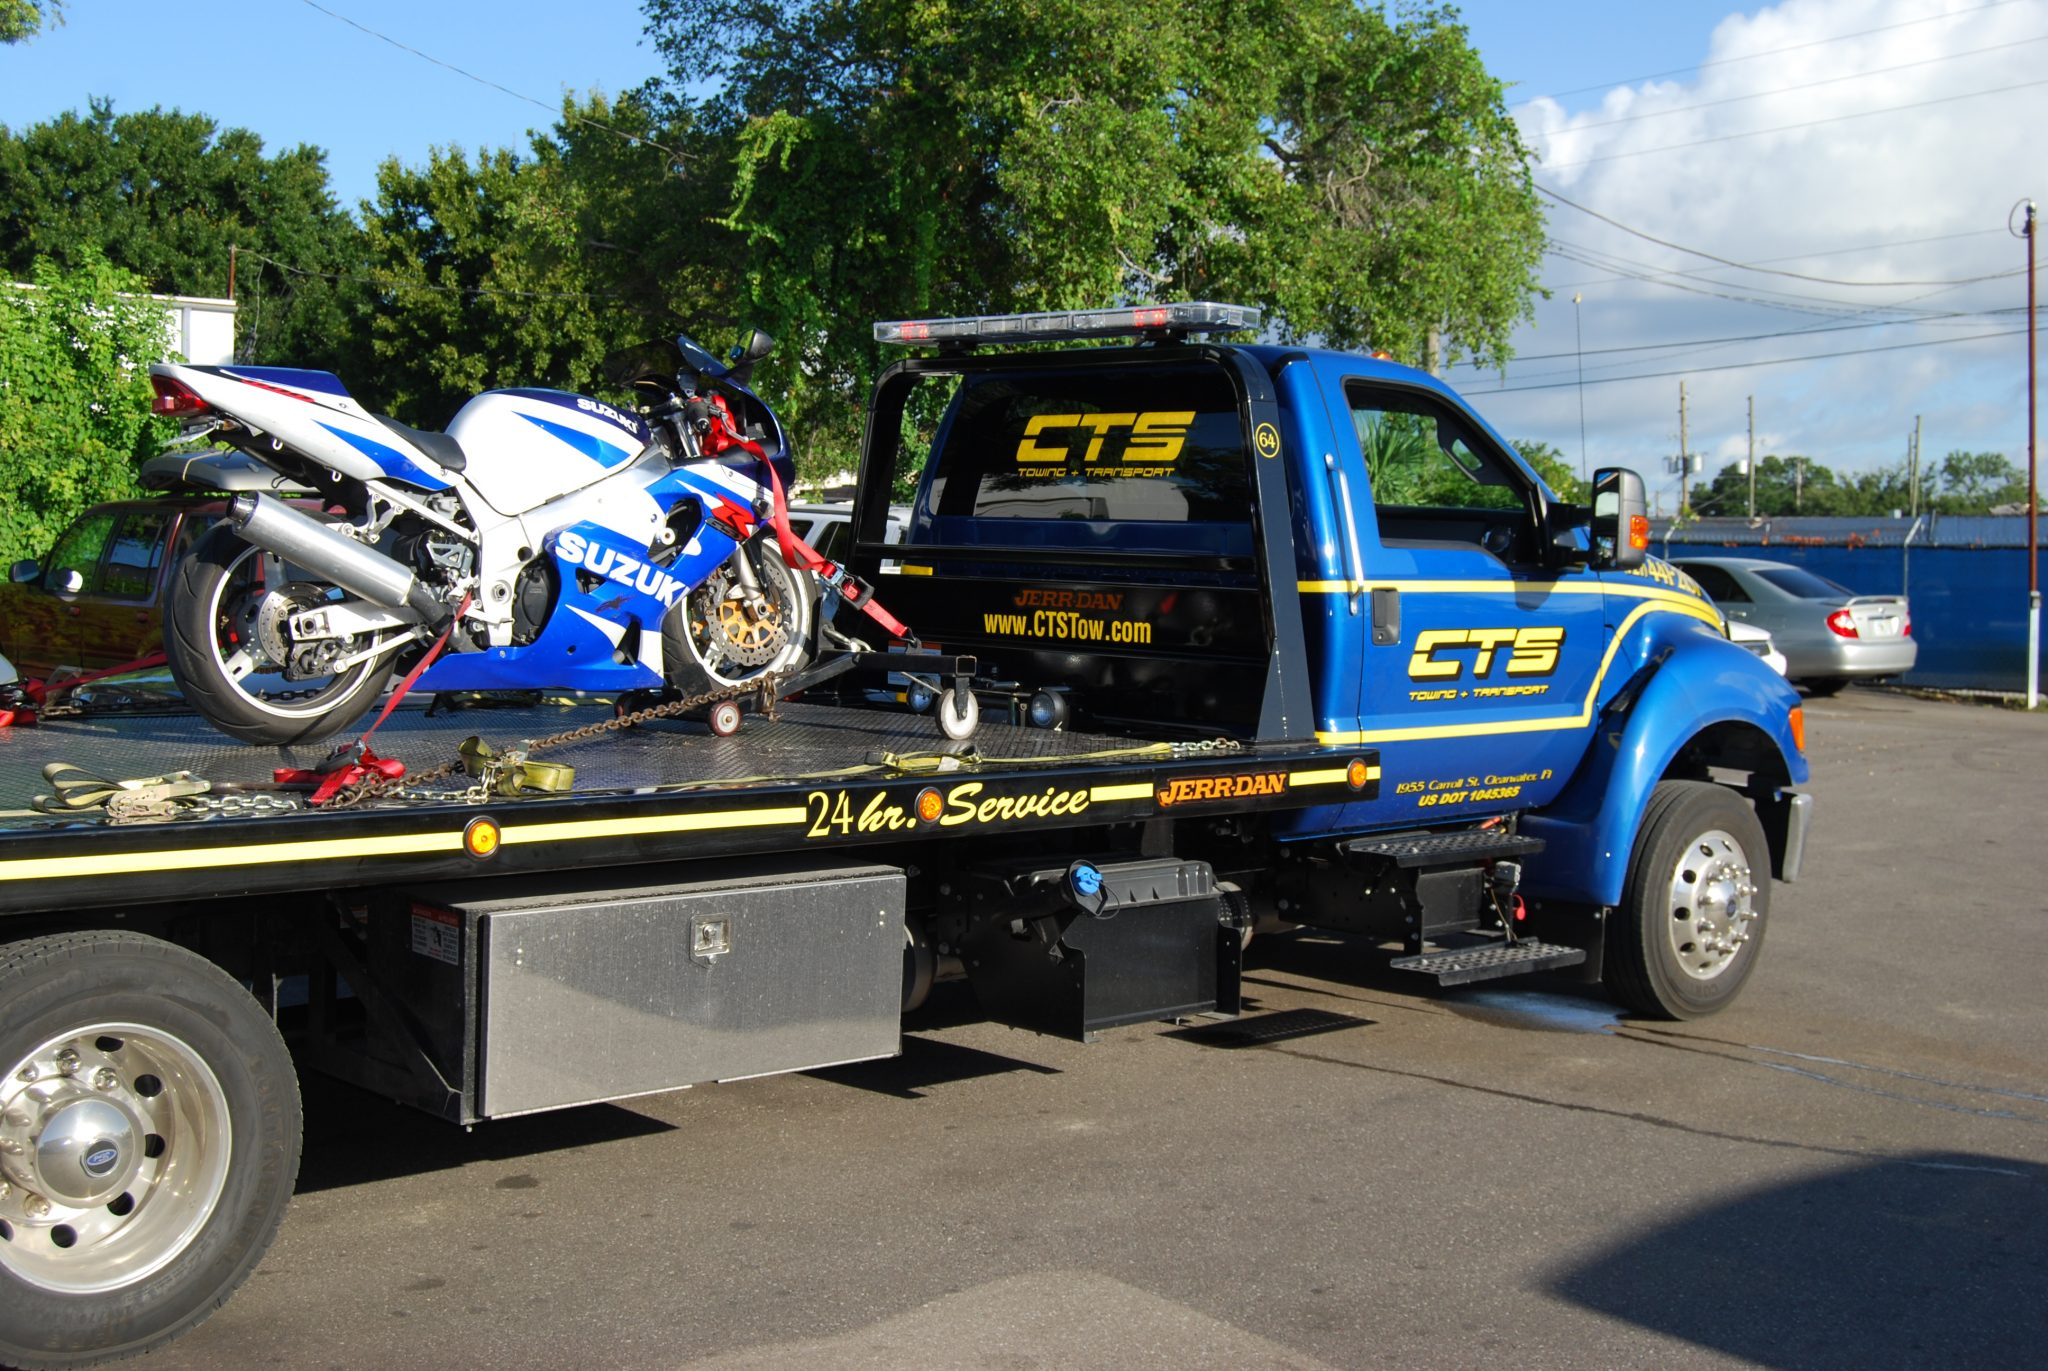 Motorcycle on the back of a CTS Tow Truck